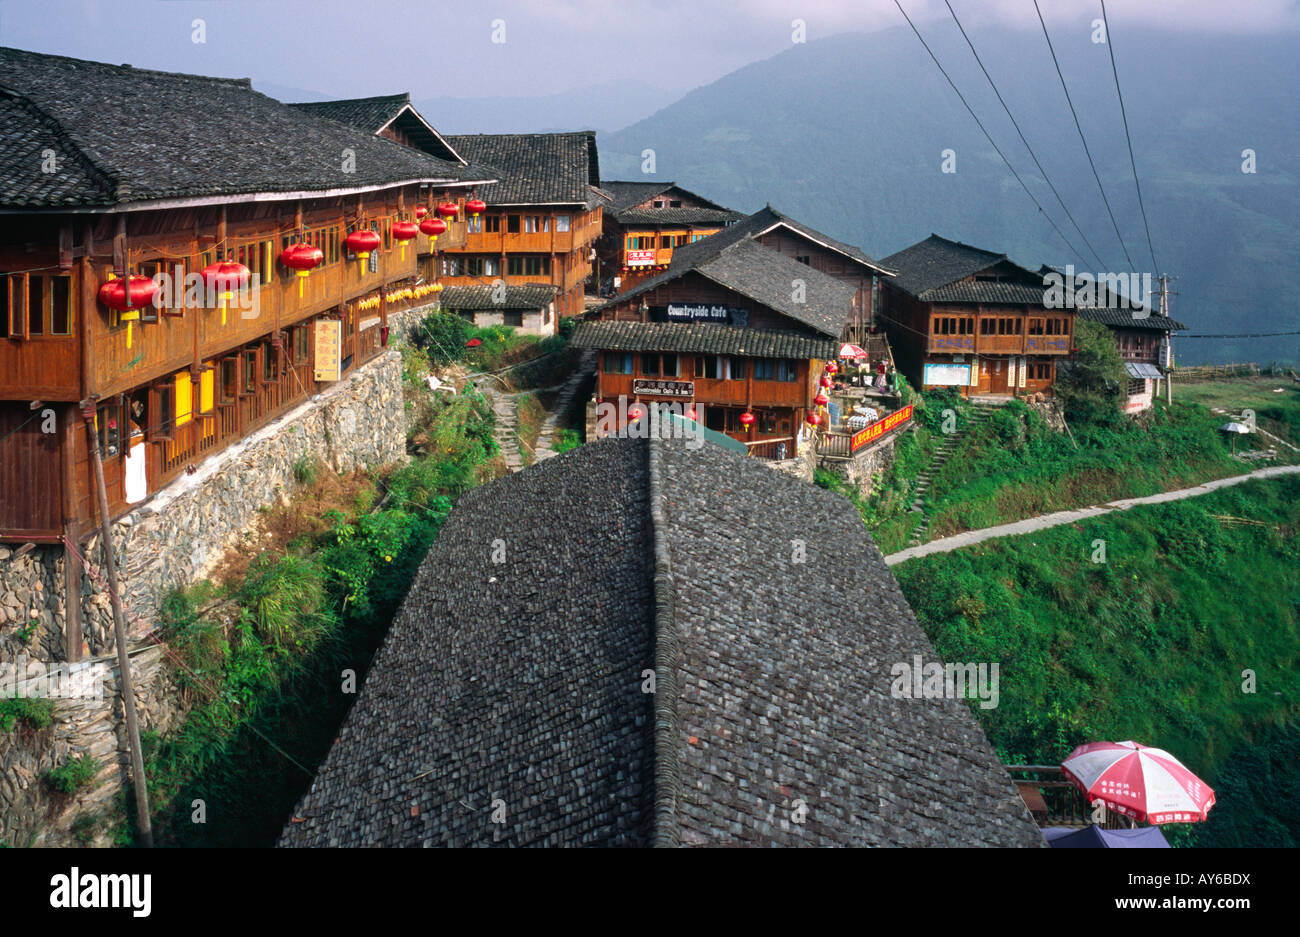 View of the Yao minority village of Ping'an in the Chinese province of Guangxi. Stock Photo